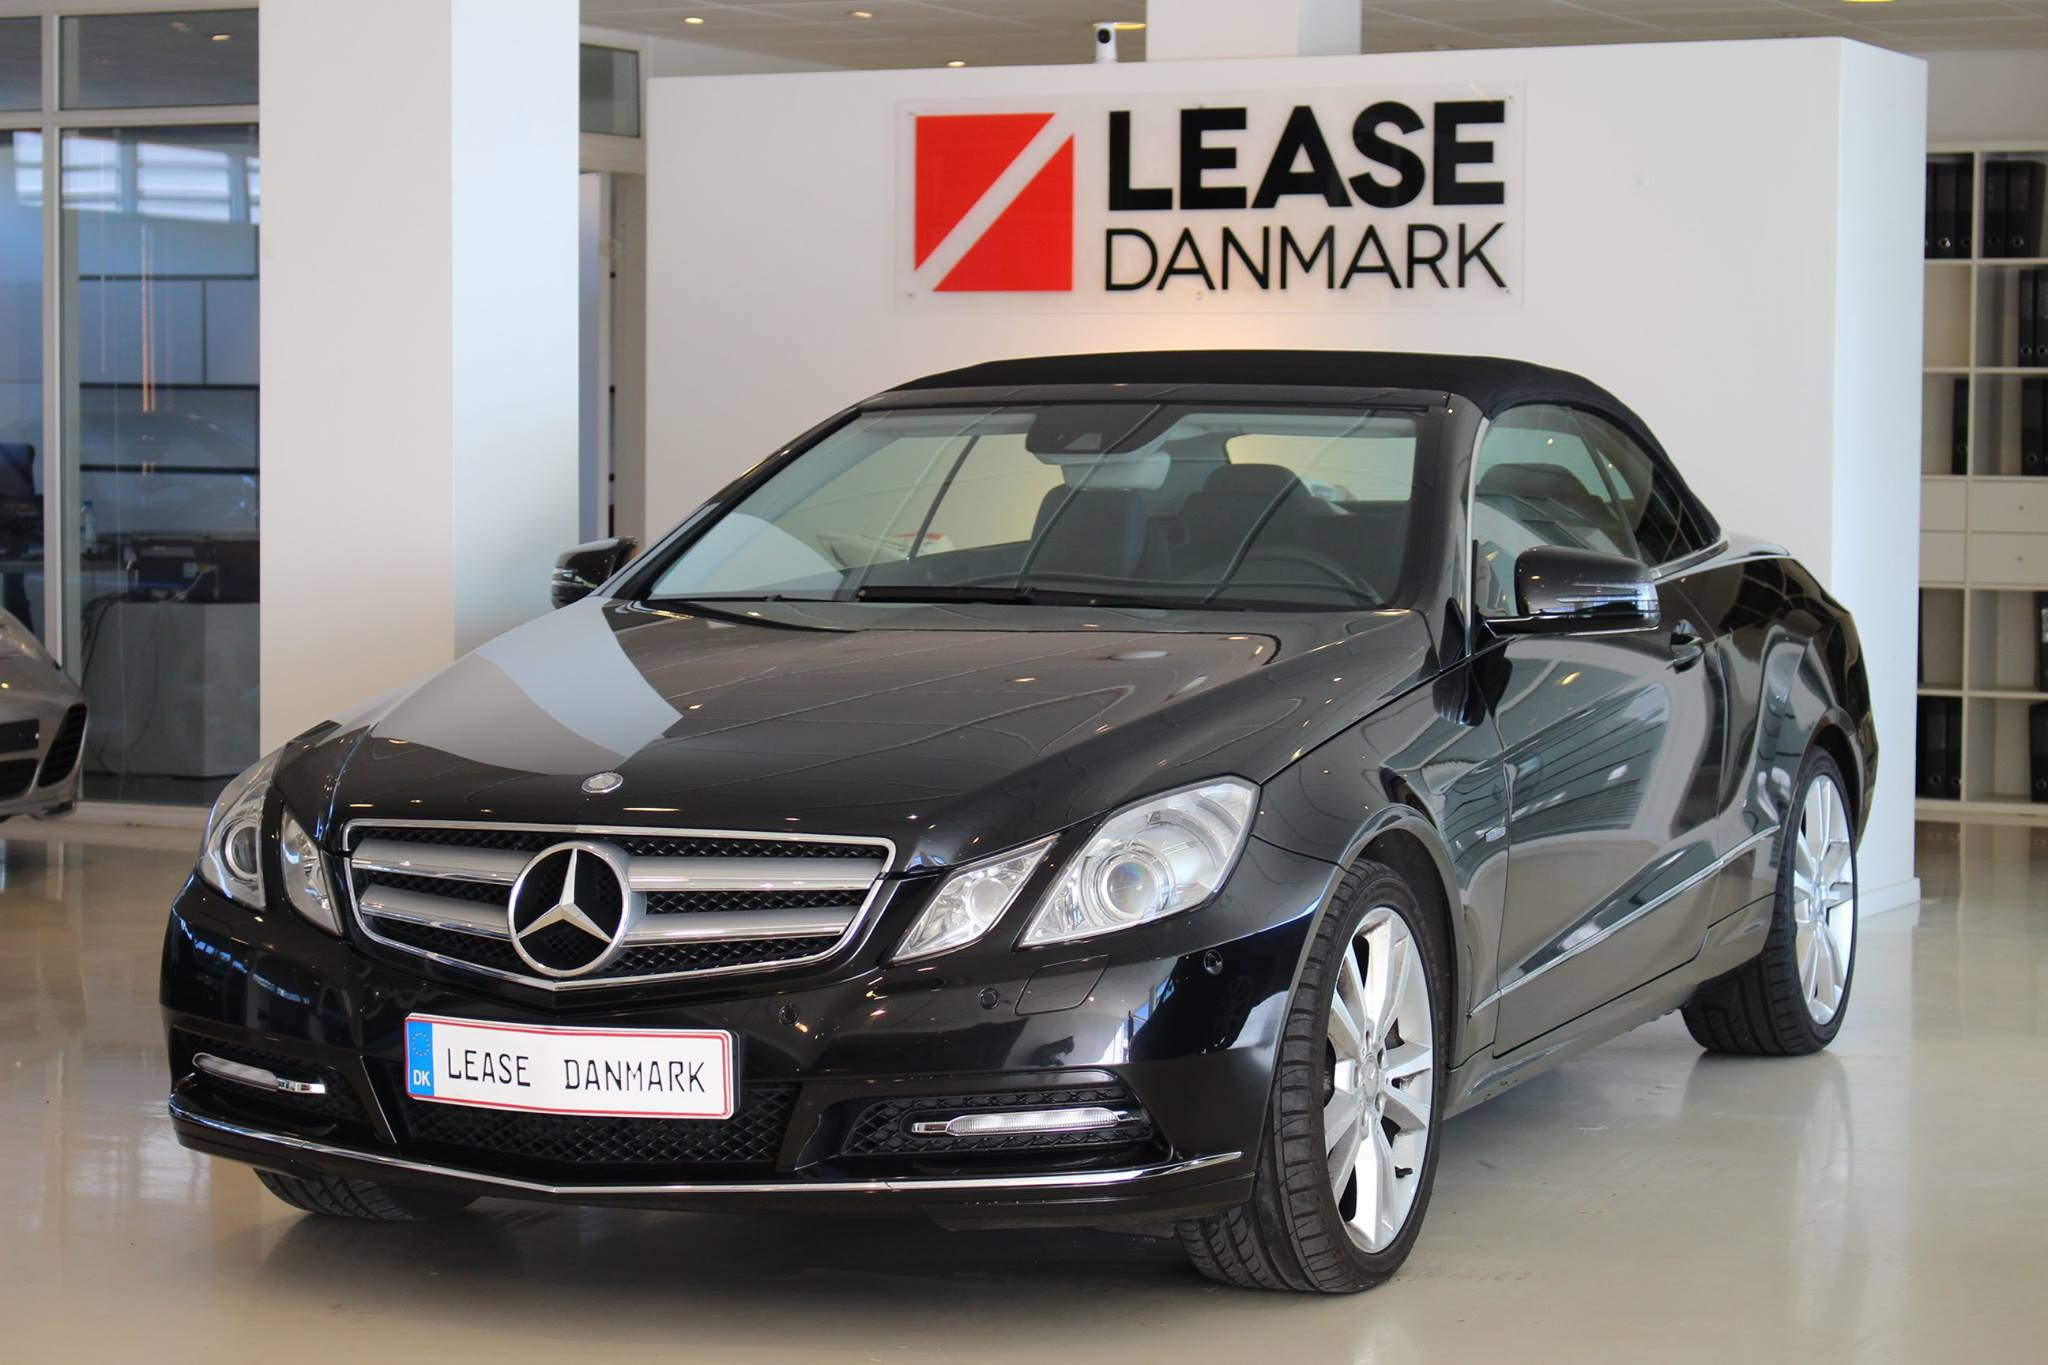 Mercedes benz e200 cabriolet lease danmark for Mercedes benz convertible lease